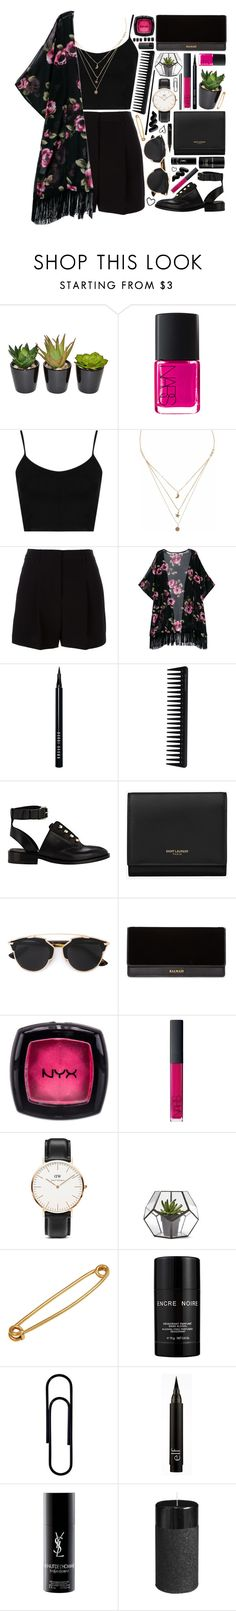 """Outfit 209"" by holass ❤ liked on Polyvore featuring The French Bee, NARS Cosmetics, Topshop, Liz Law, DKNY, Bobbi Brown Cosmetics, GHD, Balenciaga, Yves Saint Laurent and Christian Dior"